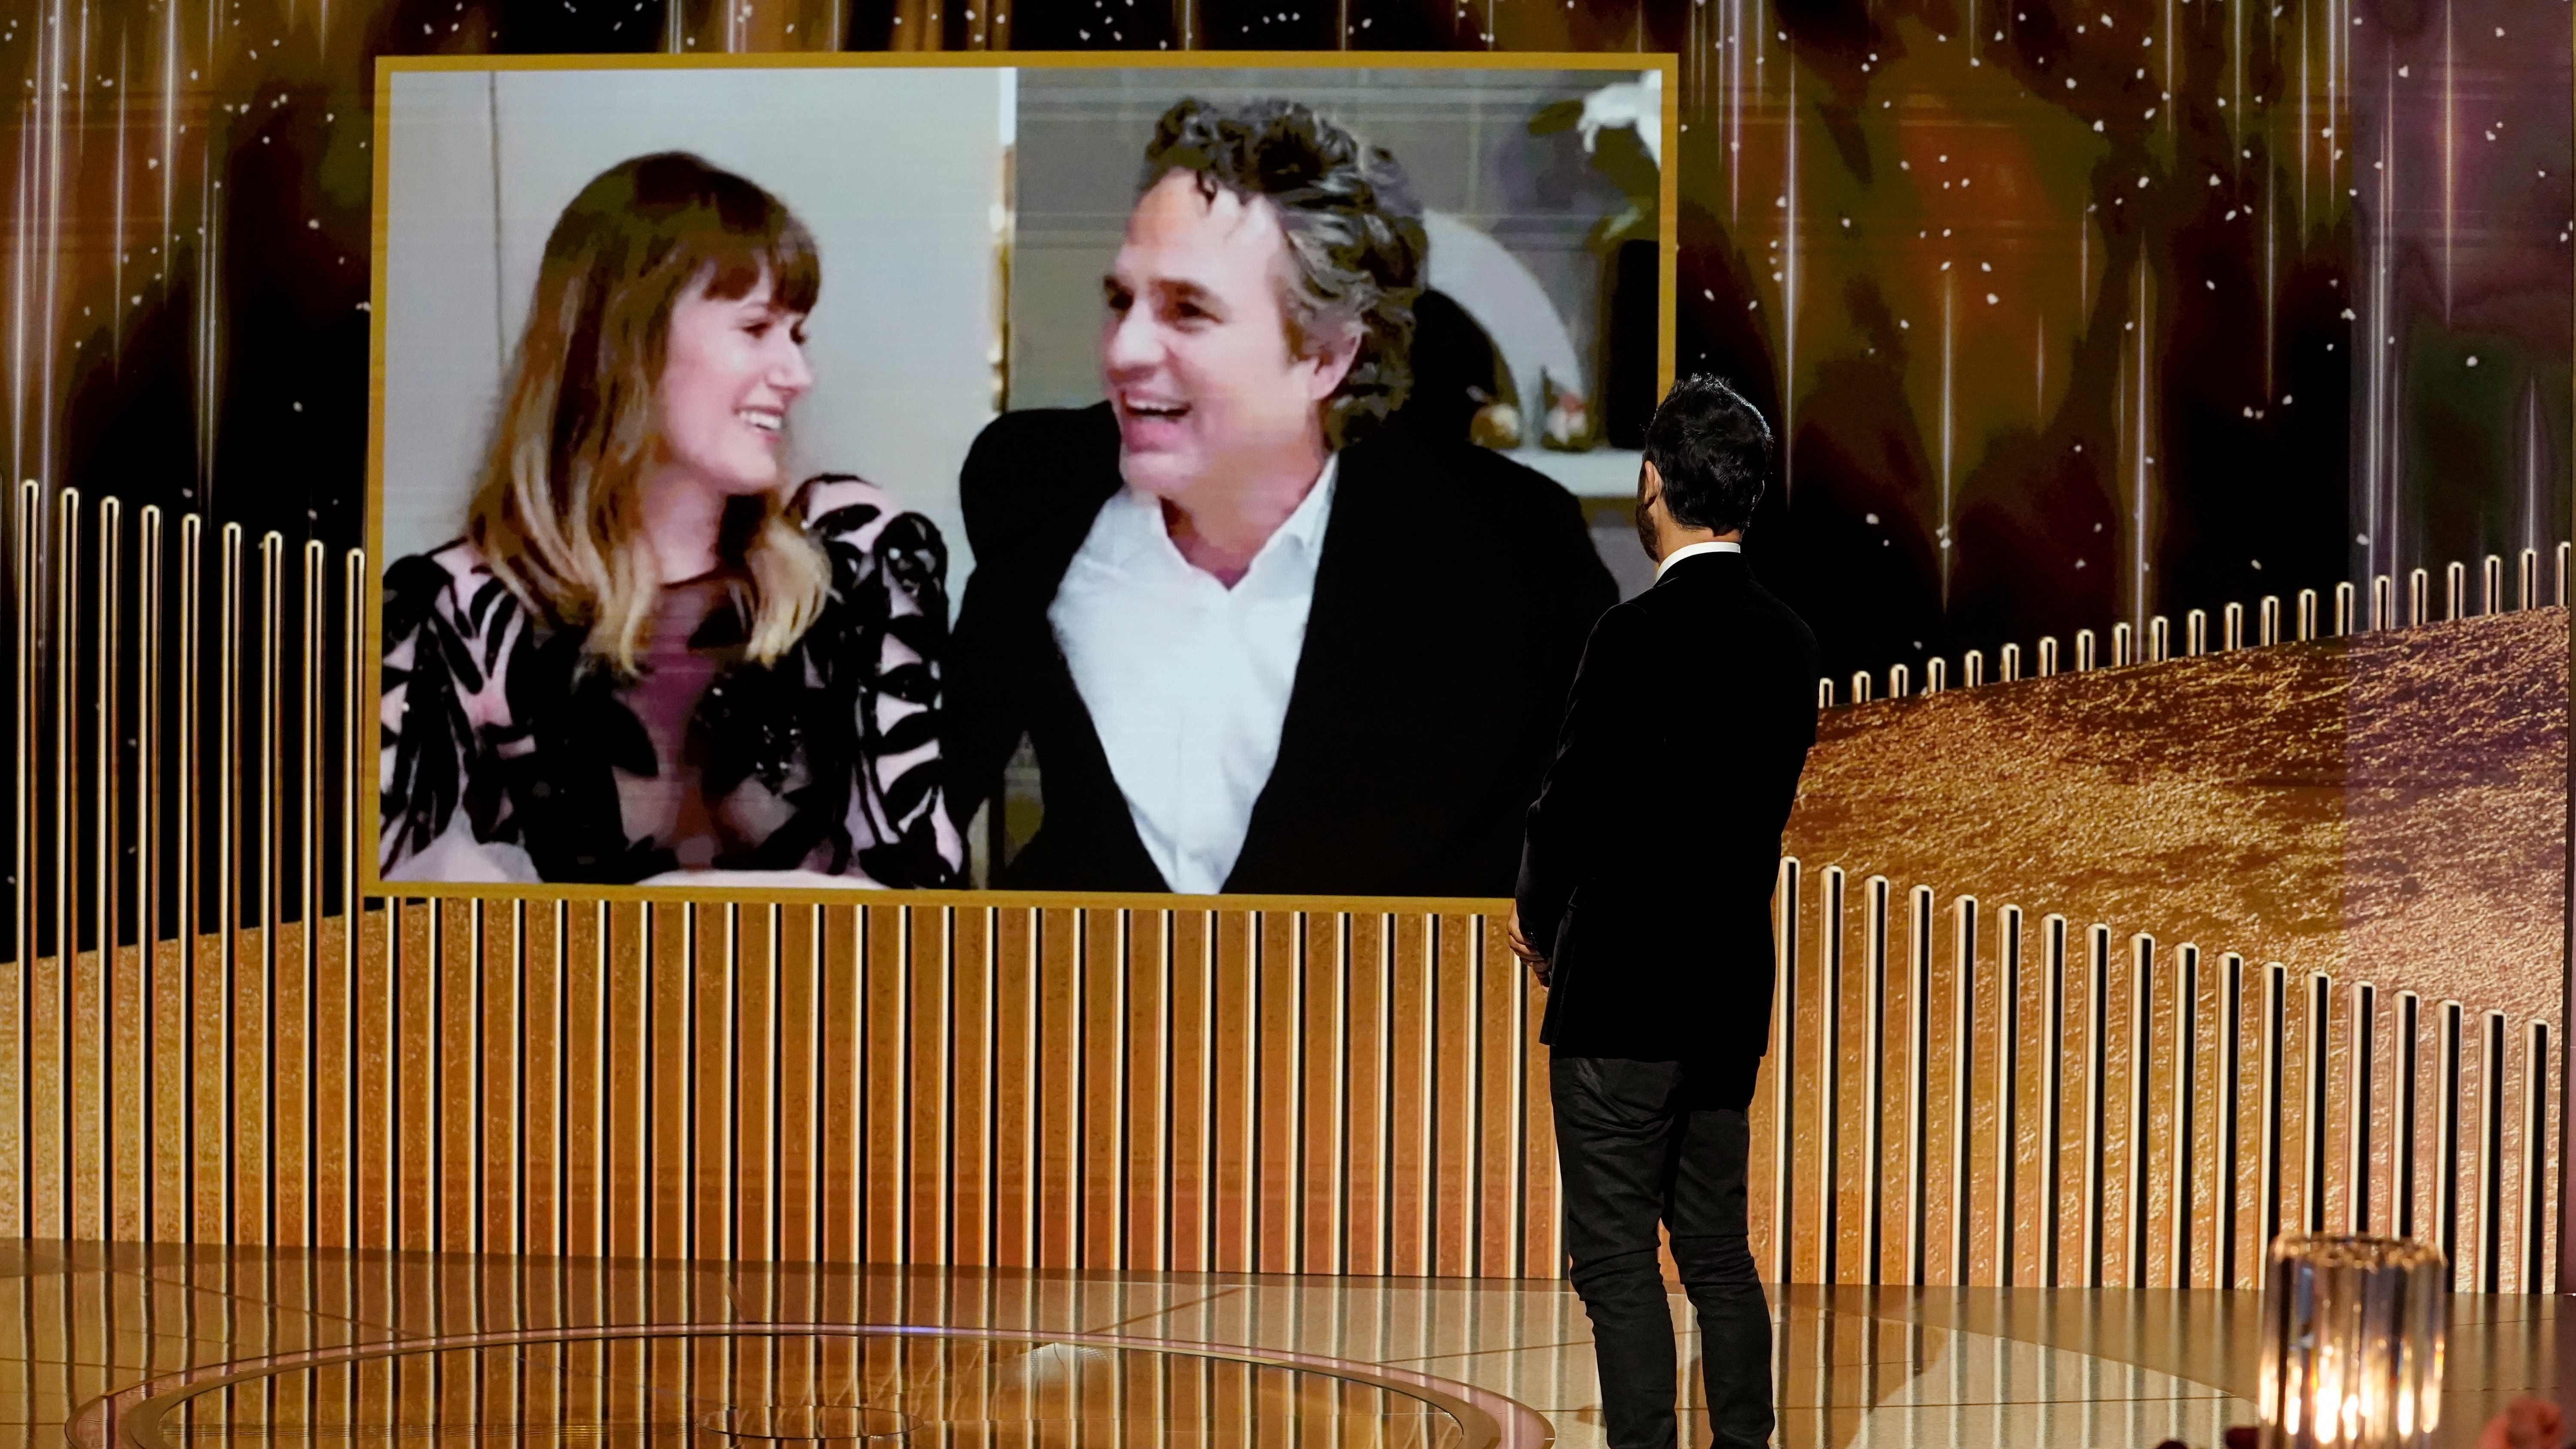 Ruffalo wins Golden Globe award for 'I Know This Much Is True'